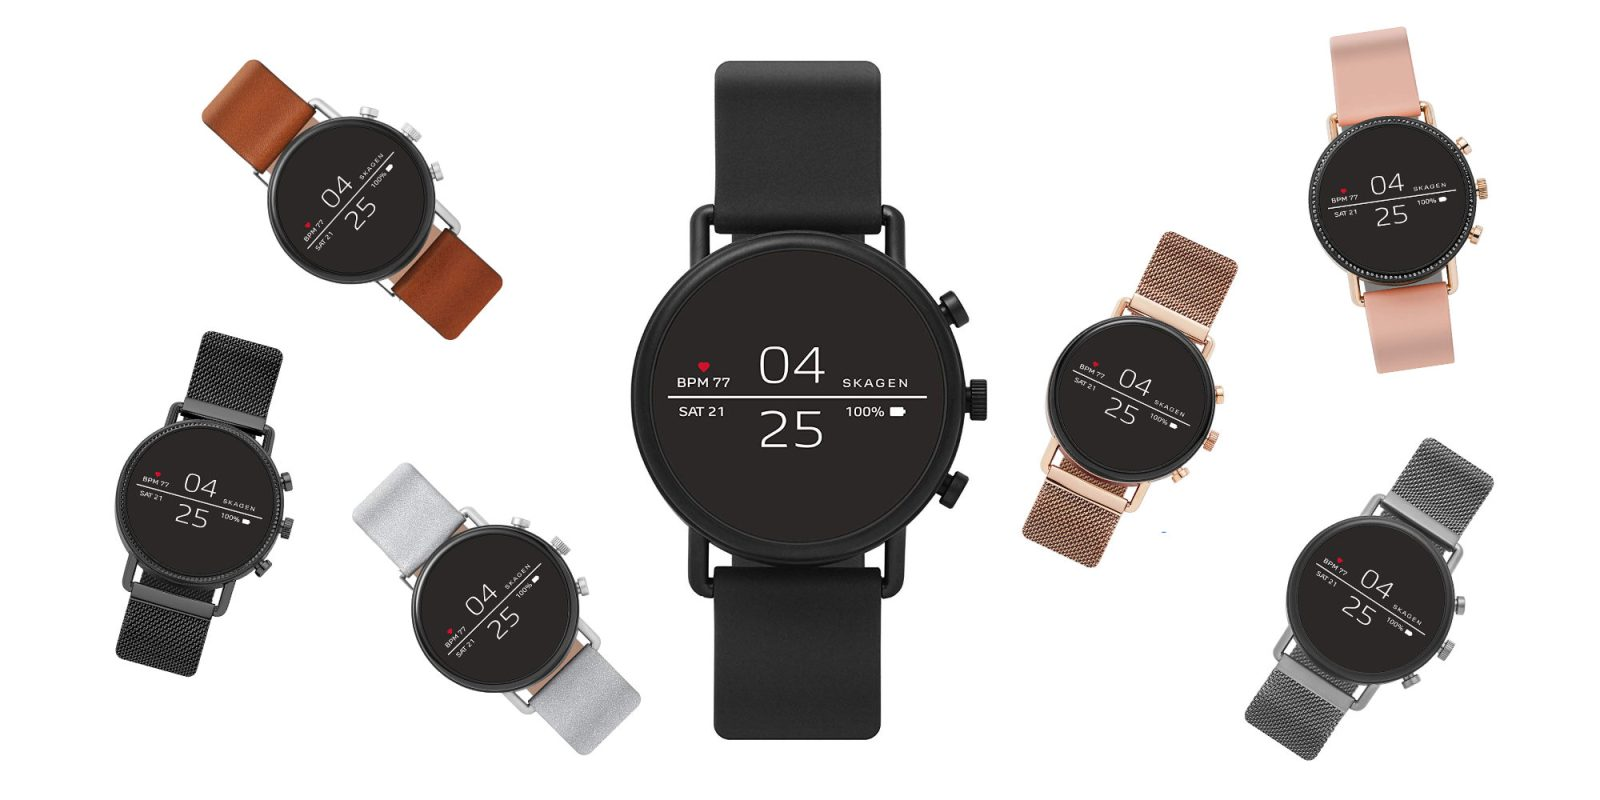 Amazon's Skagen Wear OS Smartwatch sale slashes eight styles to $199 (Reg. $275)